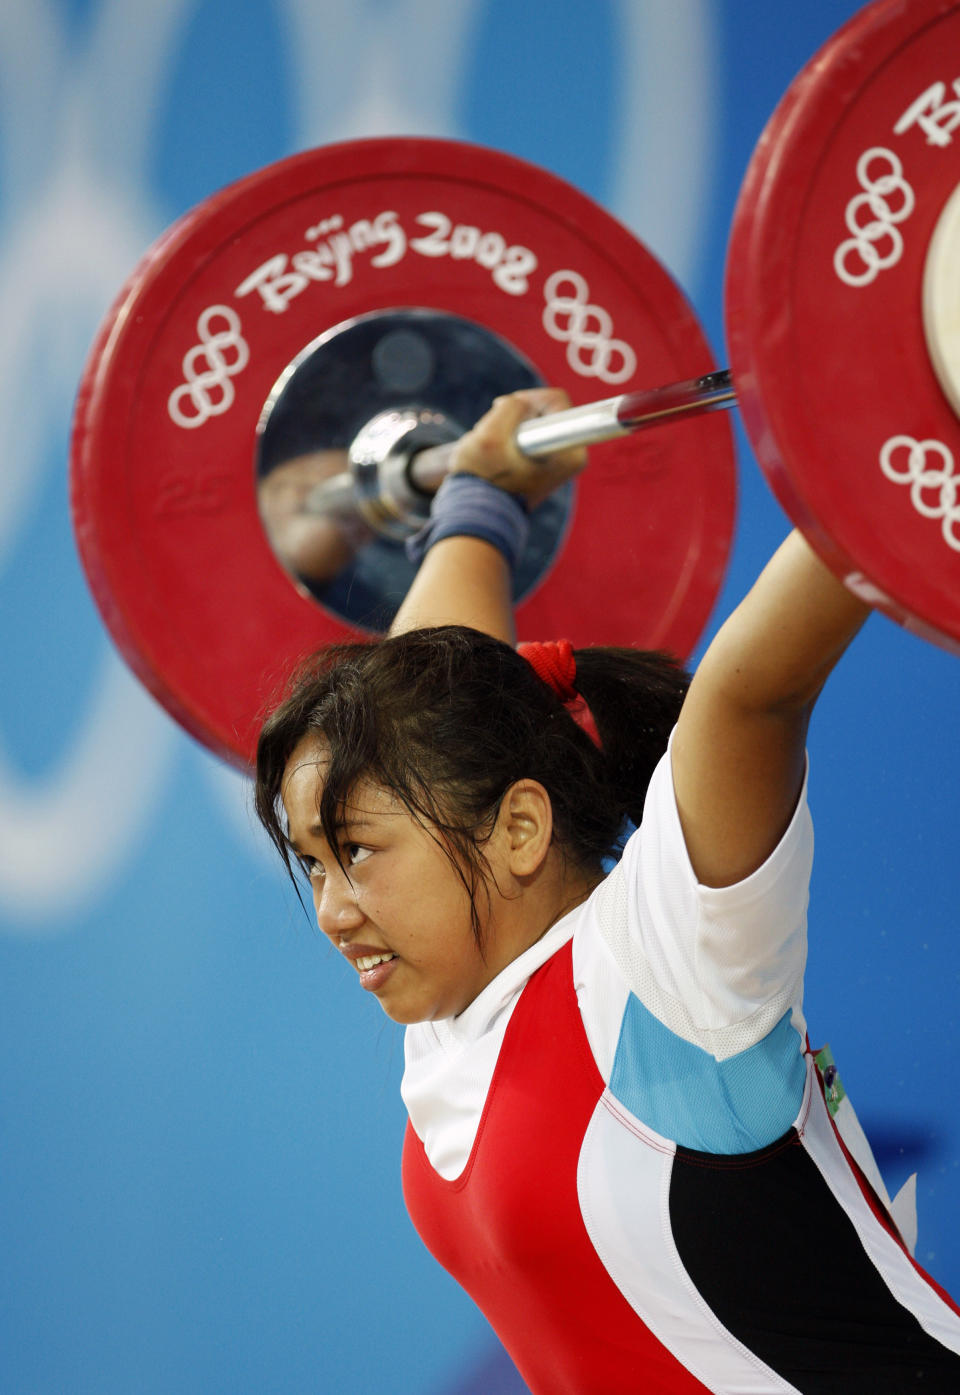 Hidilyn Diaz of the Philippines competes in the women's 58kg Group A snatch weightlifting competition at the Beijing 2008 Olympic Games August 11, 2008.     REUTERS/Oleg Popov (CHINA)